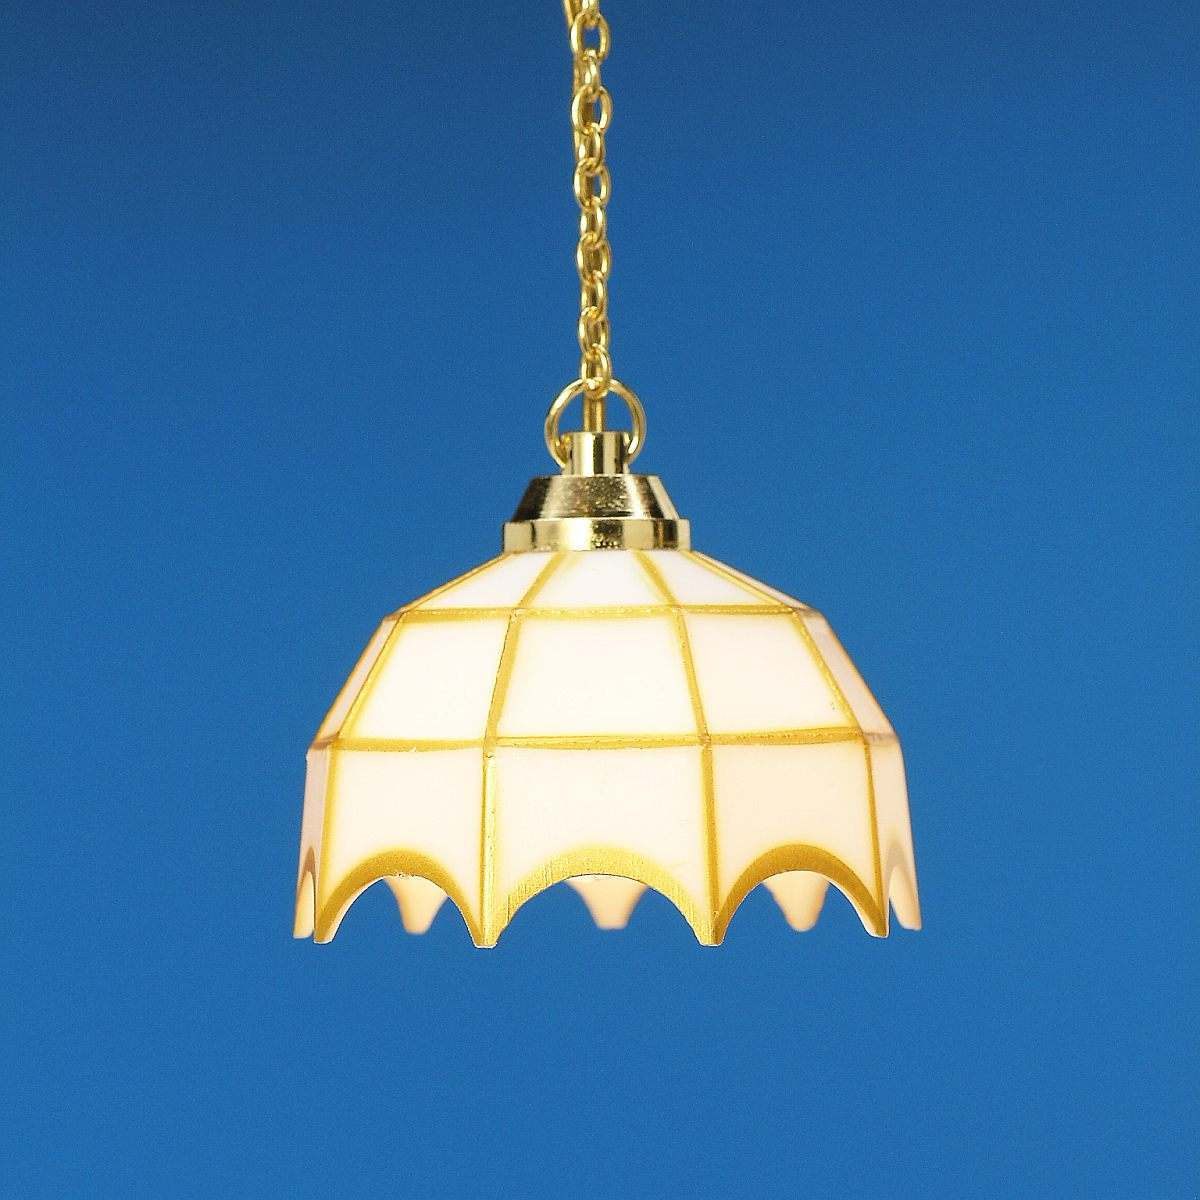 Tiffany hanging ceiling lamp, MiniLux